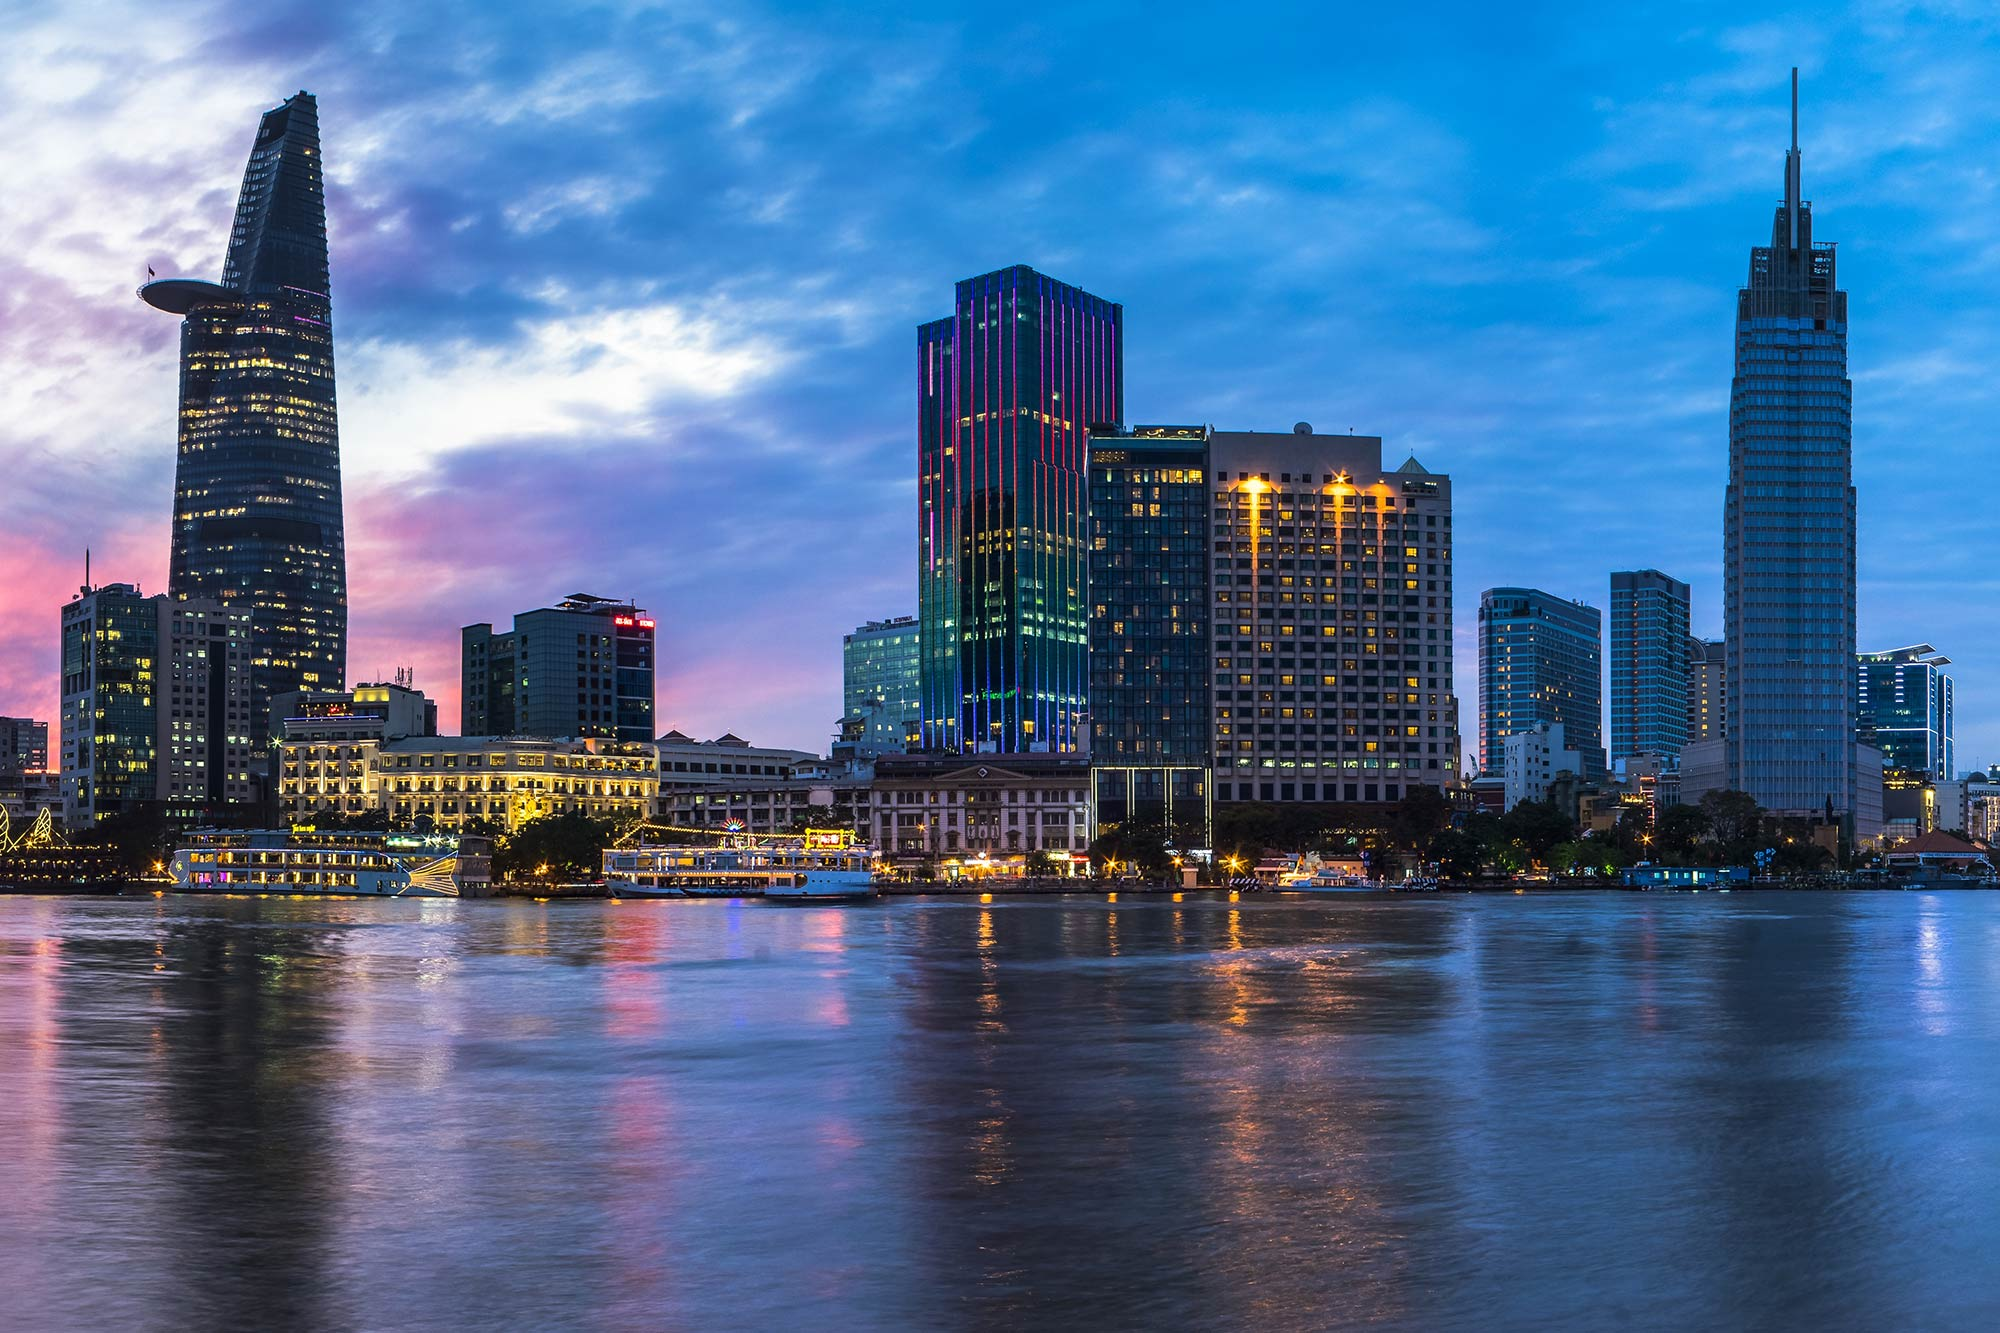 Best Spots To See The Sunrise And Sunset In Ho Chi Minh City - Vietcetera